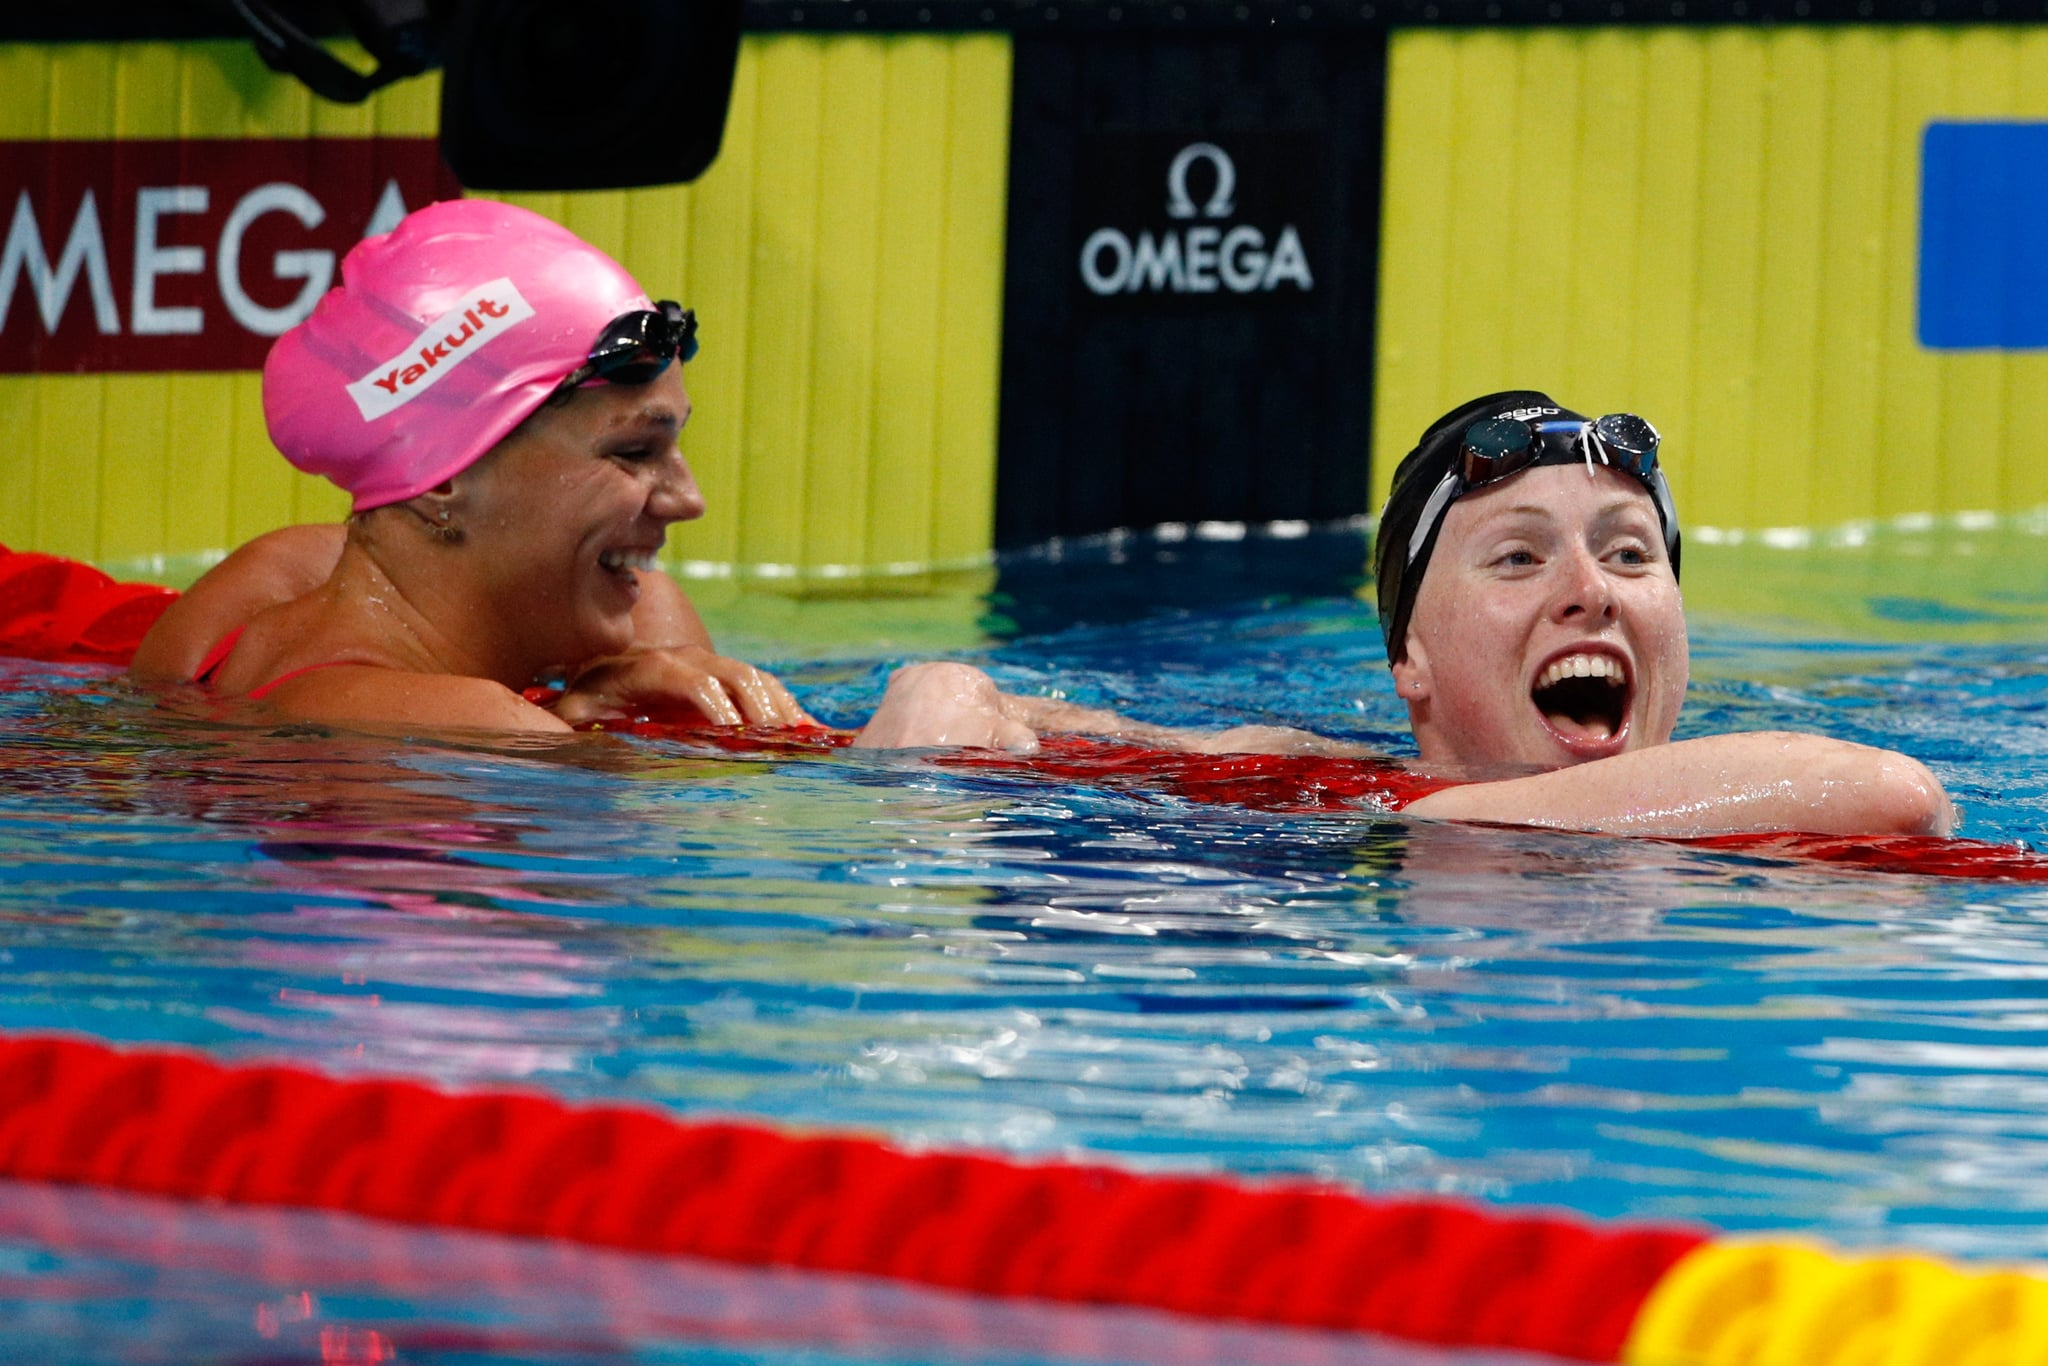 BUDAPEST, HUNGARY - JULY 30:  Lilly King of the United States (R) celebrates victory and a new World Record of 29.40 in the Women's 50m Breastsroke Final on day seventeen of the Budapest 2017 FINA World Championships on July 30, 2017 in Budapest, Hungary.  (Photo by Adam Pretty/Getty Images)